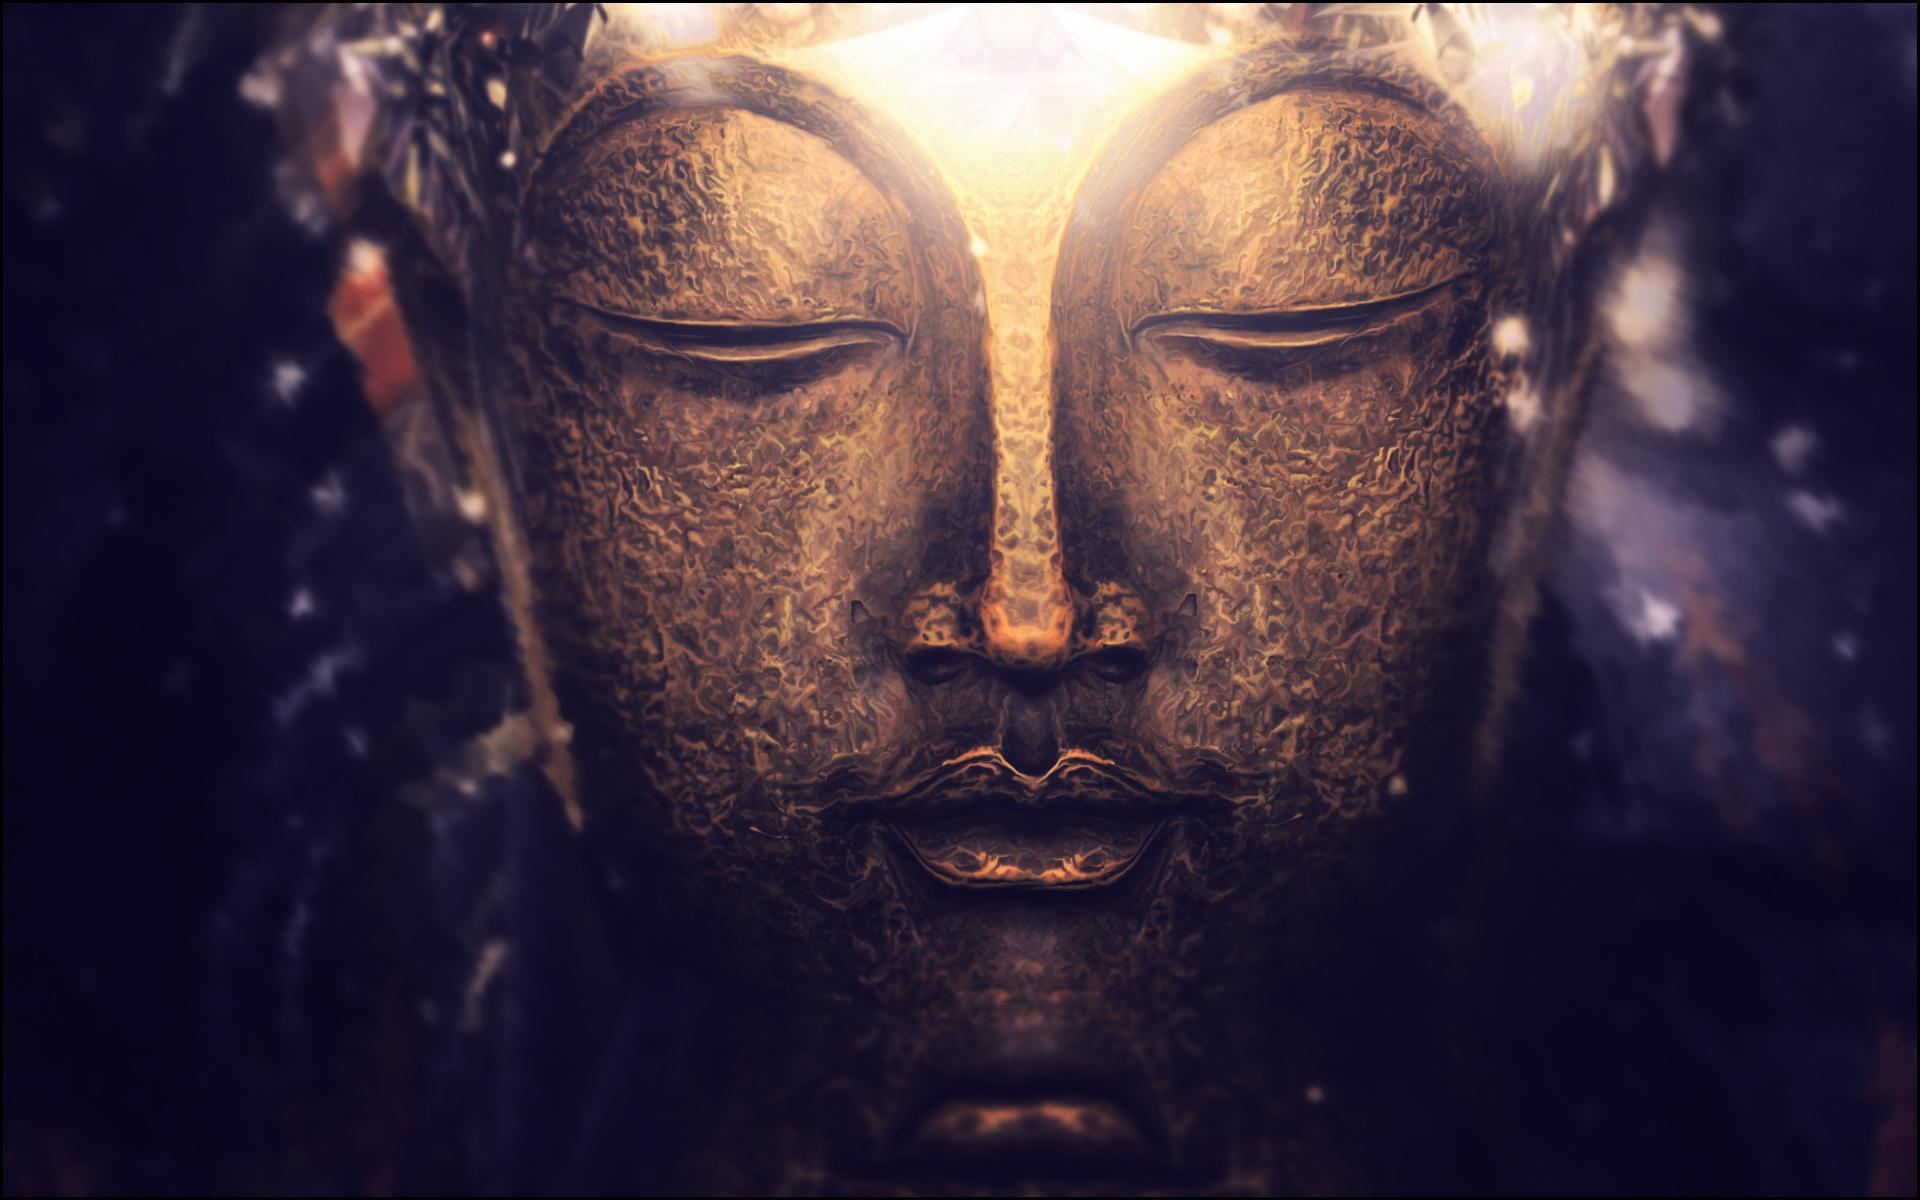 Buddha wallpaper - 985773